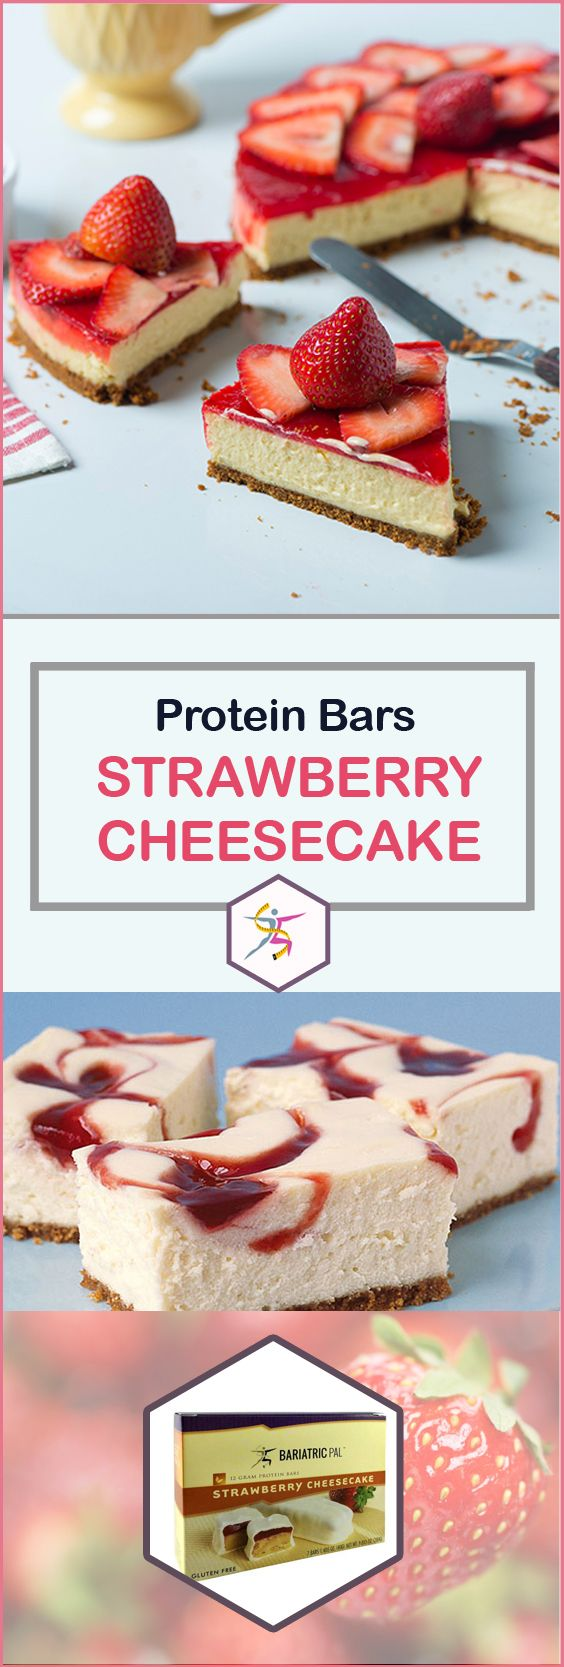 Cheesecake makes you think of guilt, but BariatricPal High Protein Bars Strawberry Cheesecake are quite the opposite. They're still as tantalizing as the fatty dessert, but they're a high-protein, sensible delicious alternative. It'll be hard to explain to your friends that you're losing weight while eating strawberry cheesecake.